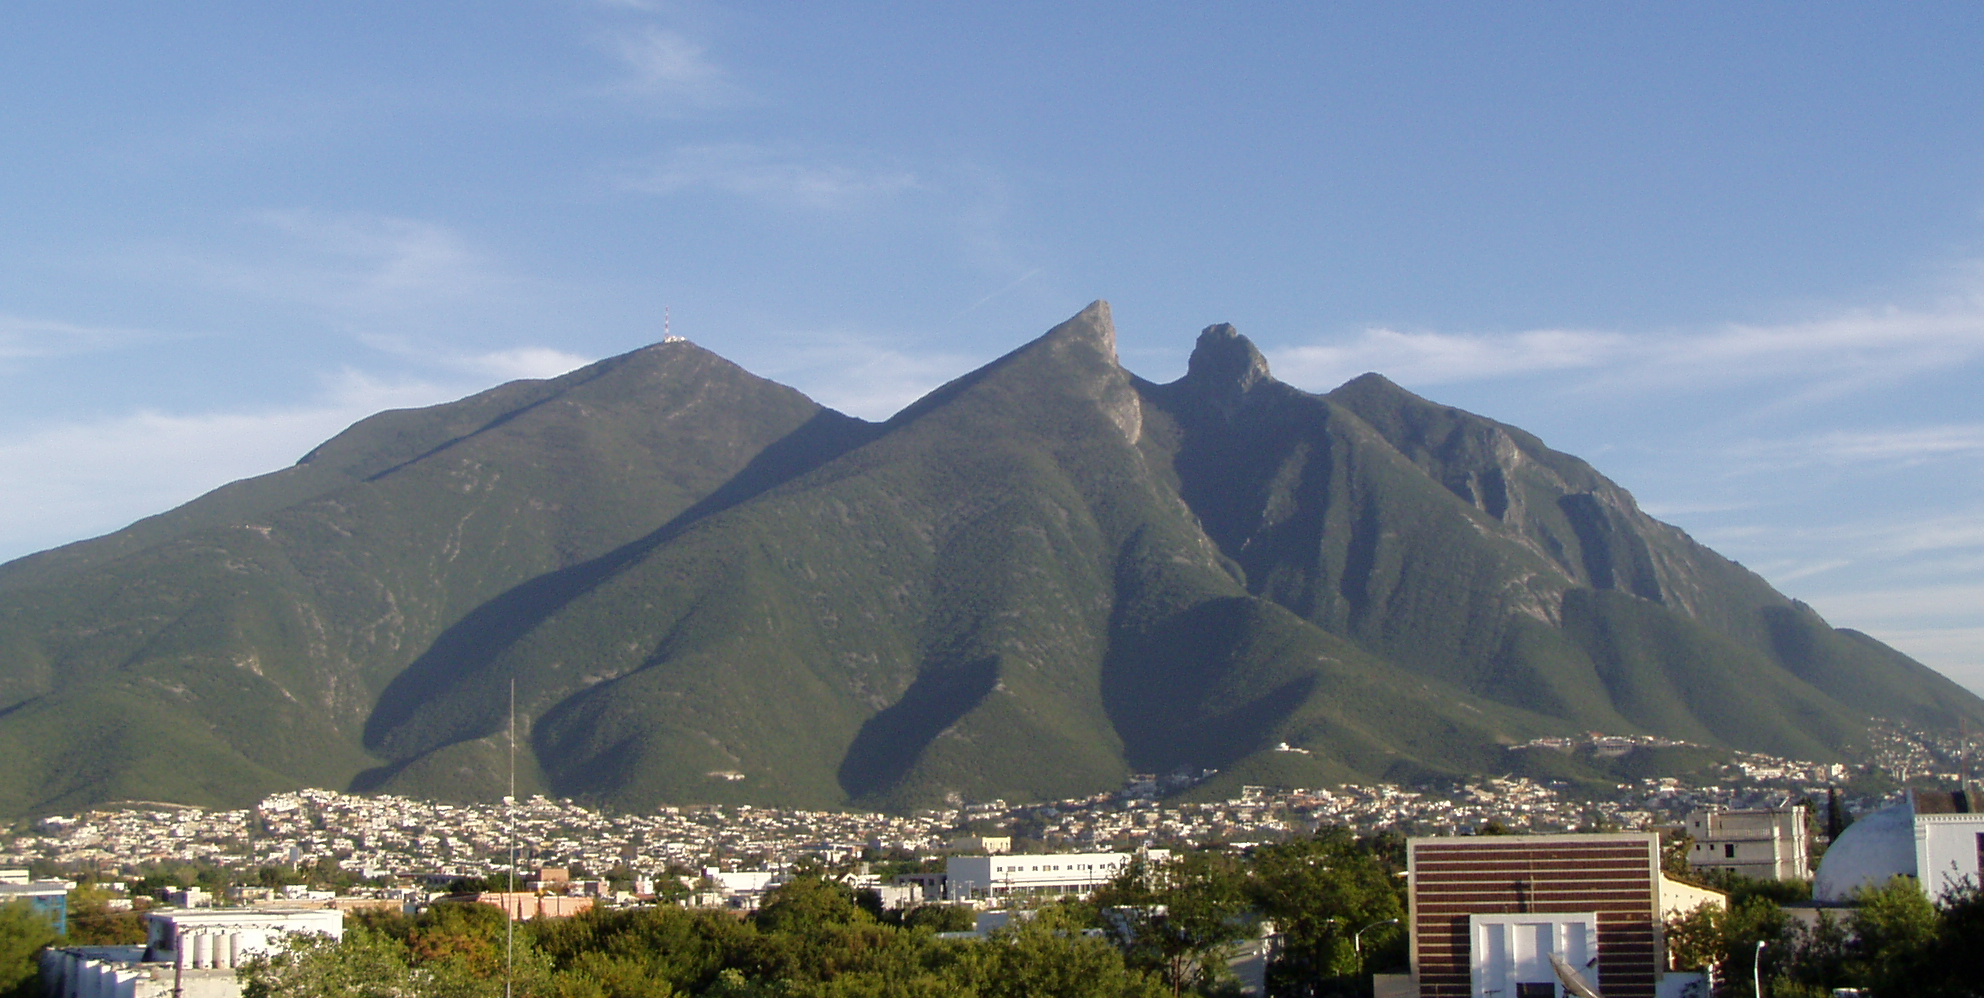 Cerro de la Silla Wikipedia, the free encyclopedia